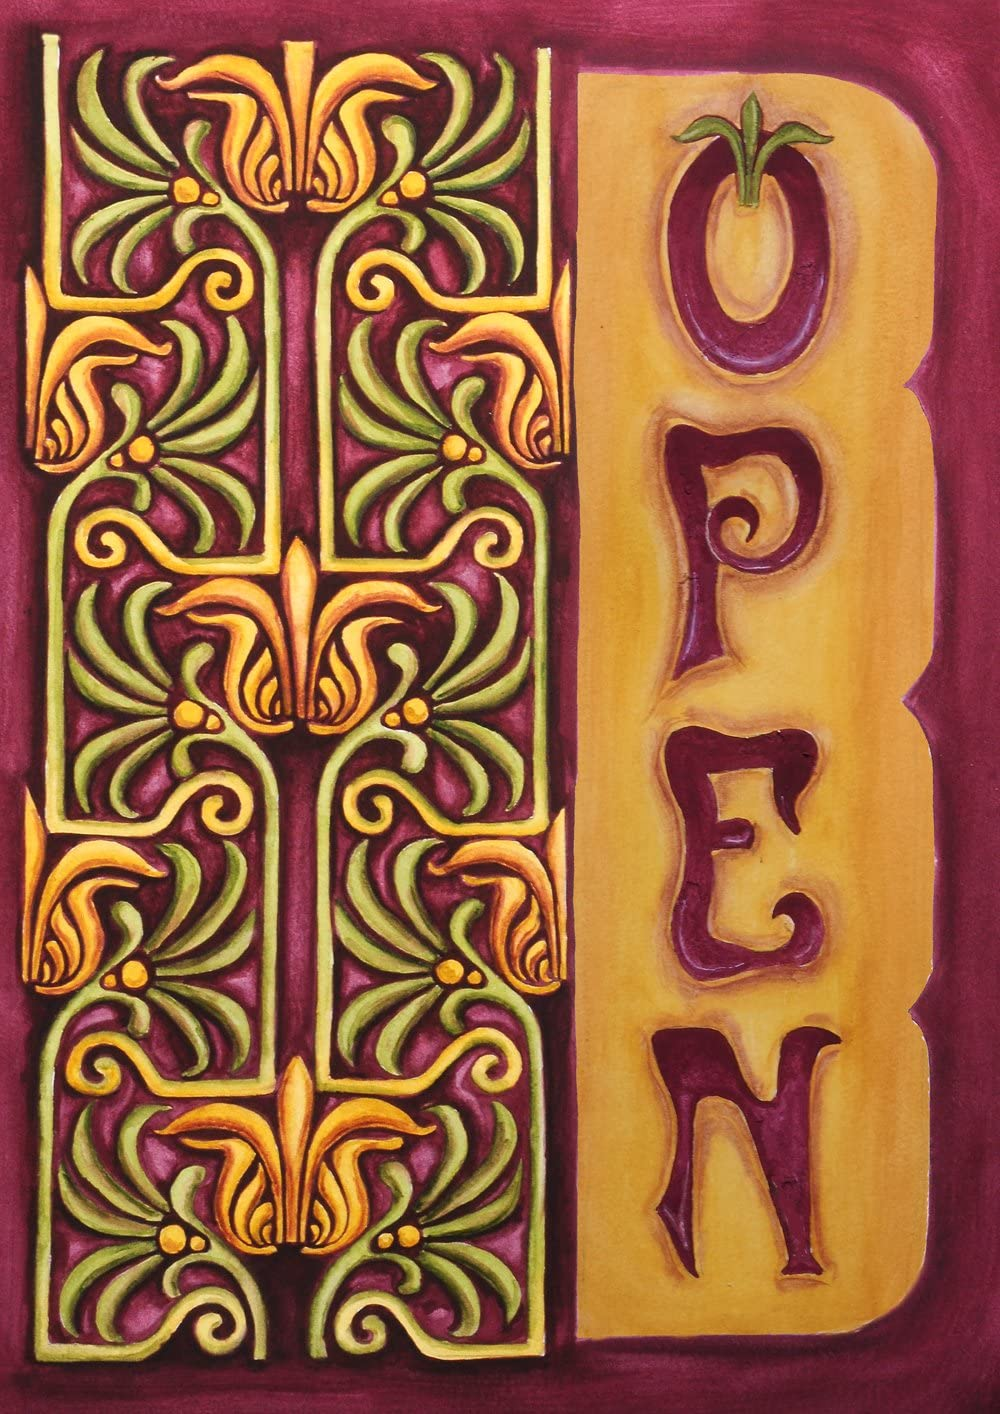 Toland Home Garden Nouveau Open 28 x 40 Inch Decorative Classic Business Sign Double Sided House Flag - 102545